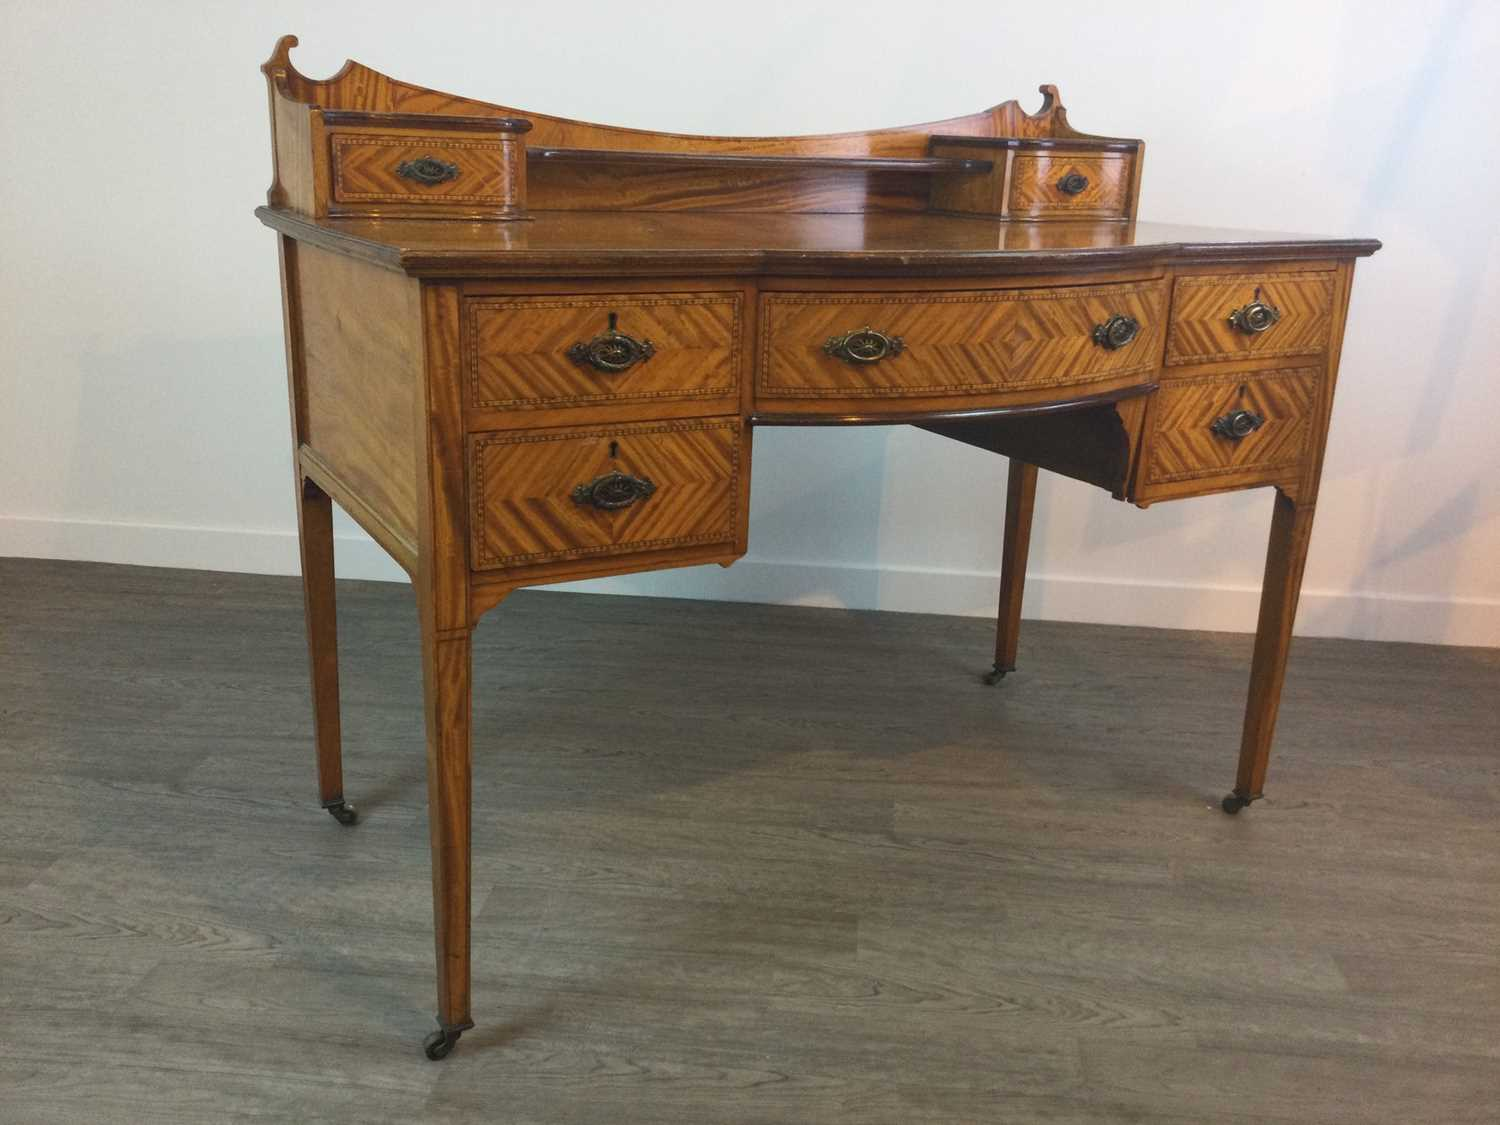 Lot 716 - A SATINWOOD SIDE TABLE